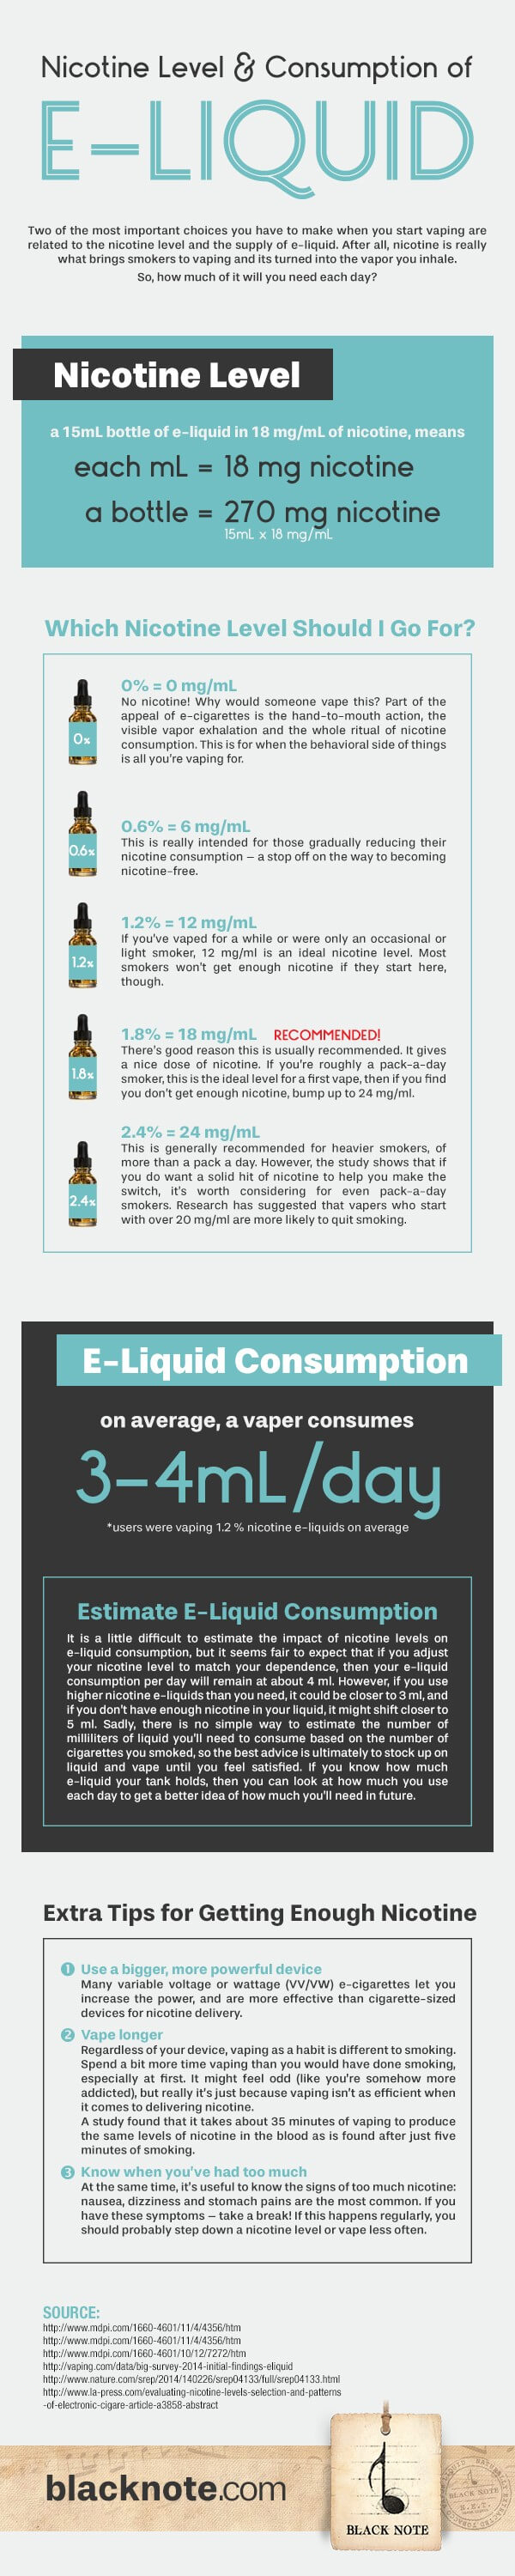 nicotine-consumption-e-liquid-infographic